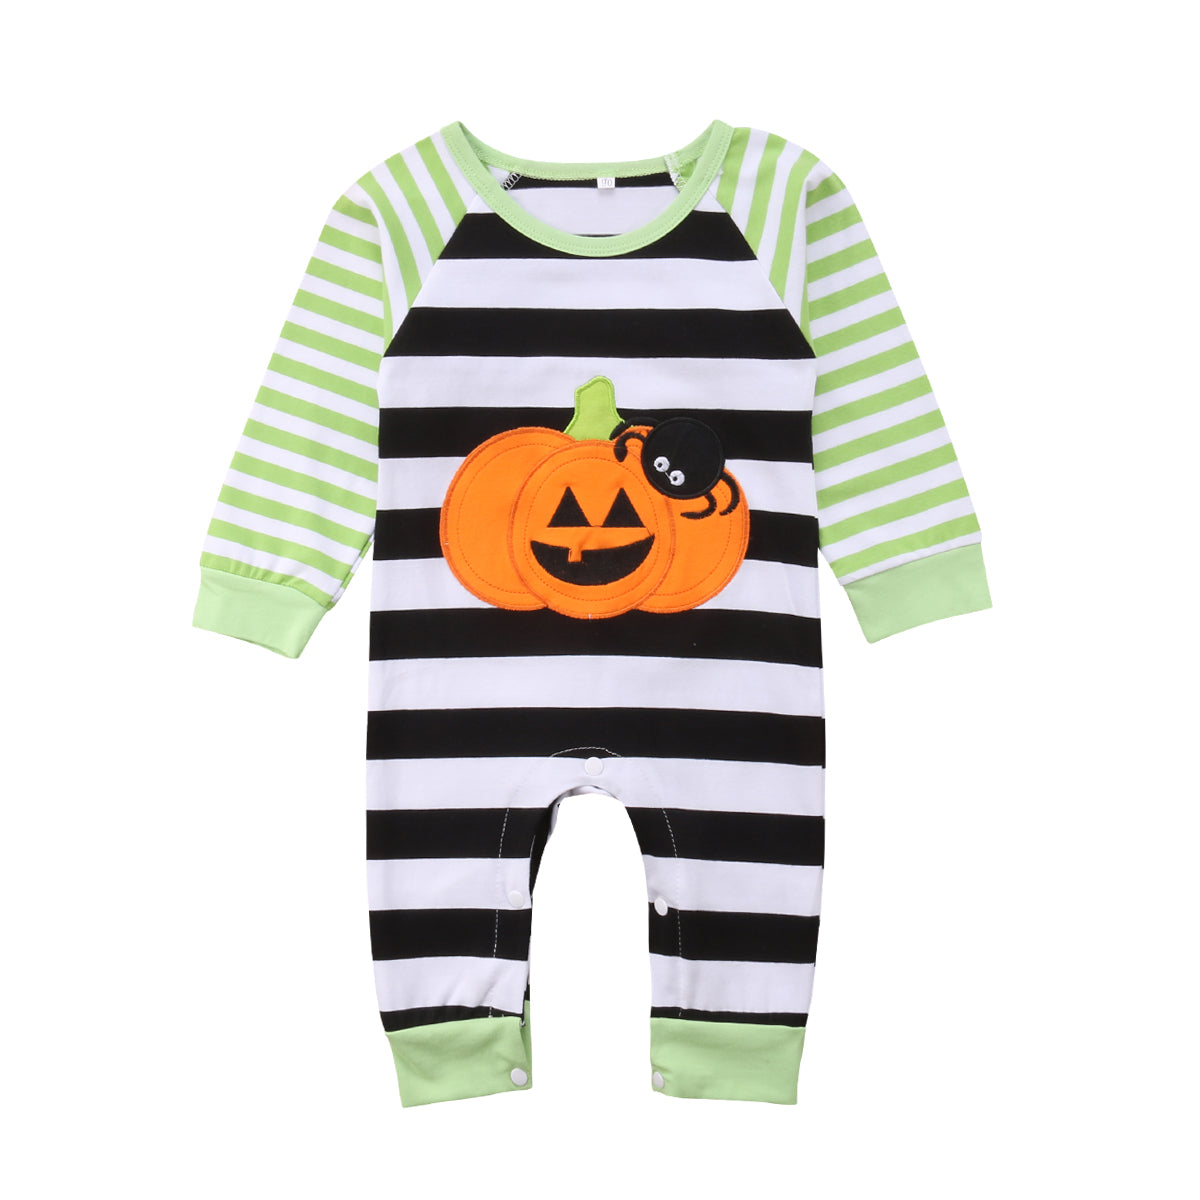 2018 Newborn Baby Kids Boys Girls Long Sleeves Pumpkin Romper Jumpsuit Green Striped Cotton Outfit Autumn Halloween Set-eosegal